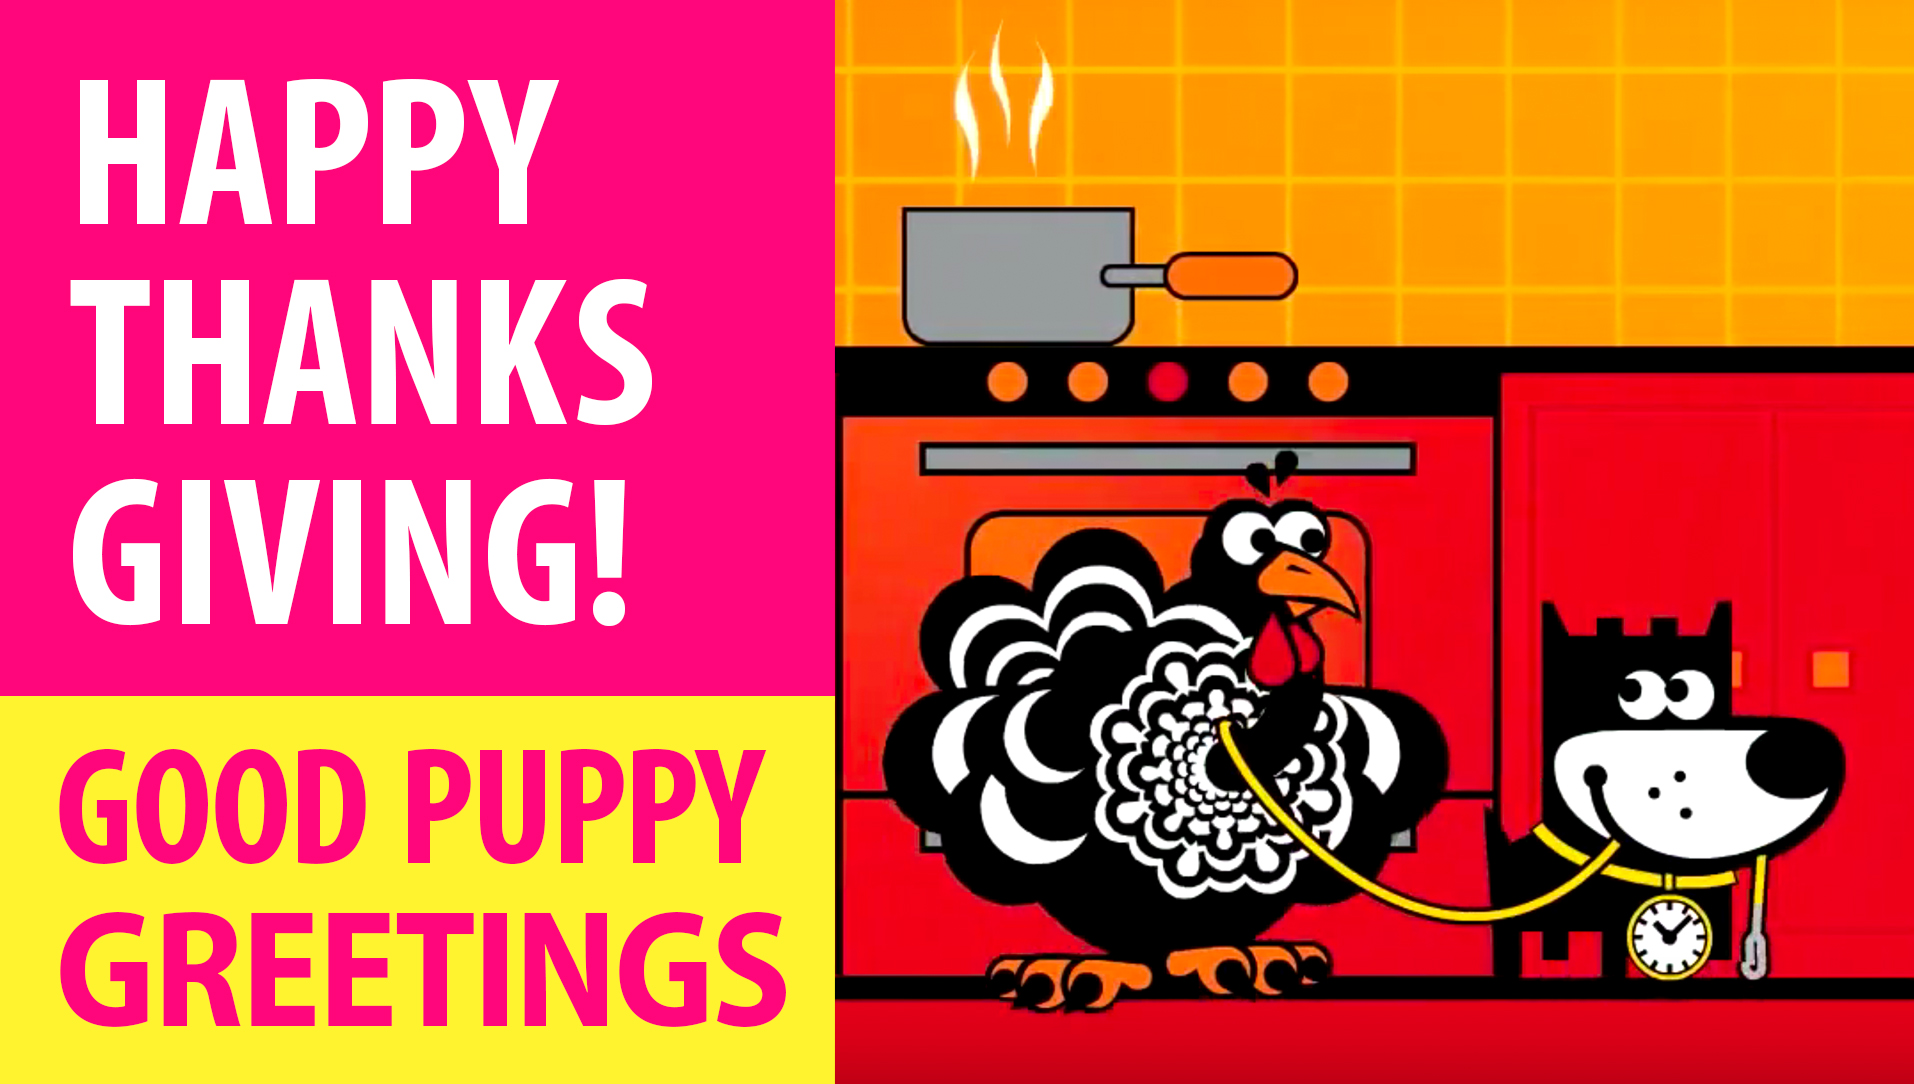 Happy Thanksgiving Day! Animated Greeting Cards - Free E-Cards By GOOD PUPPY